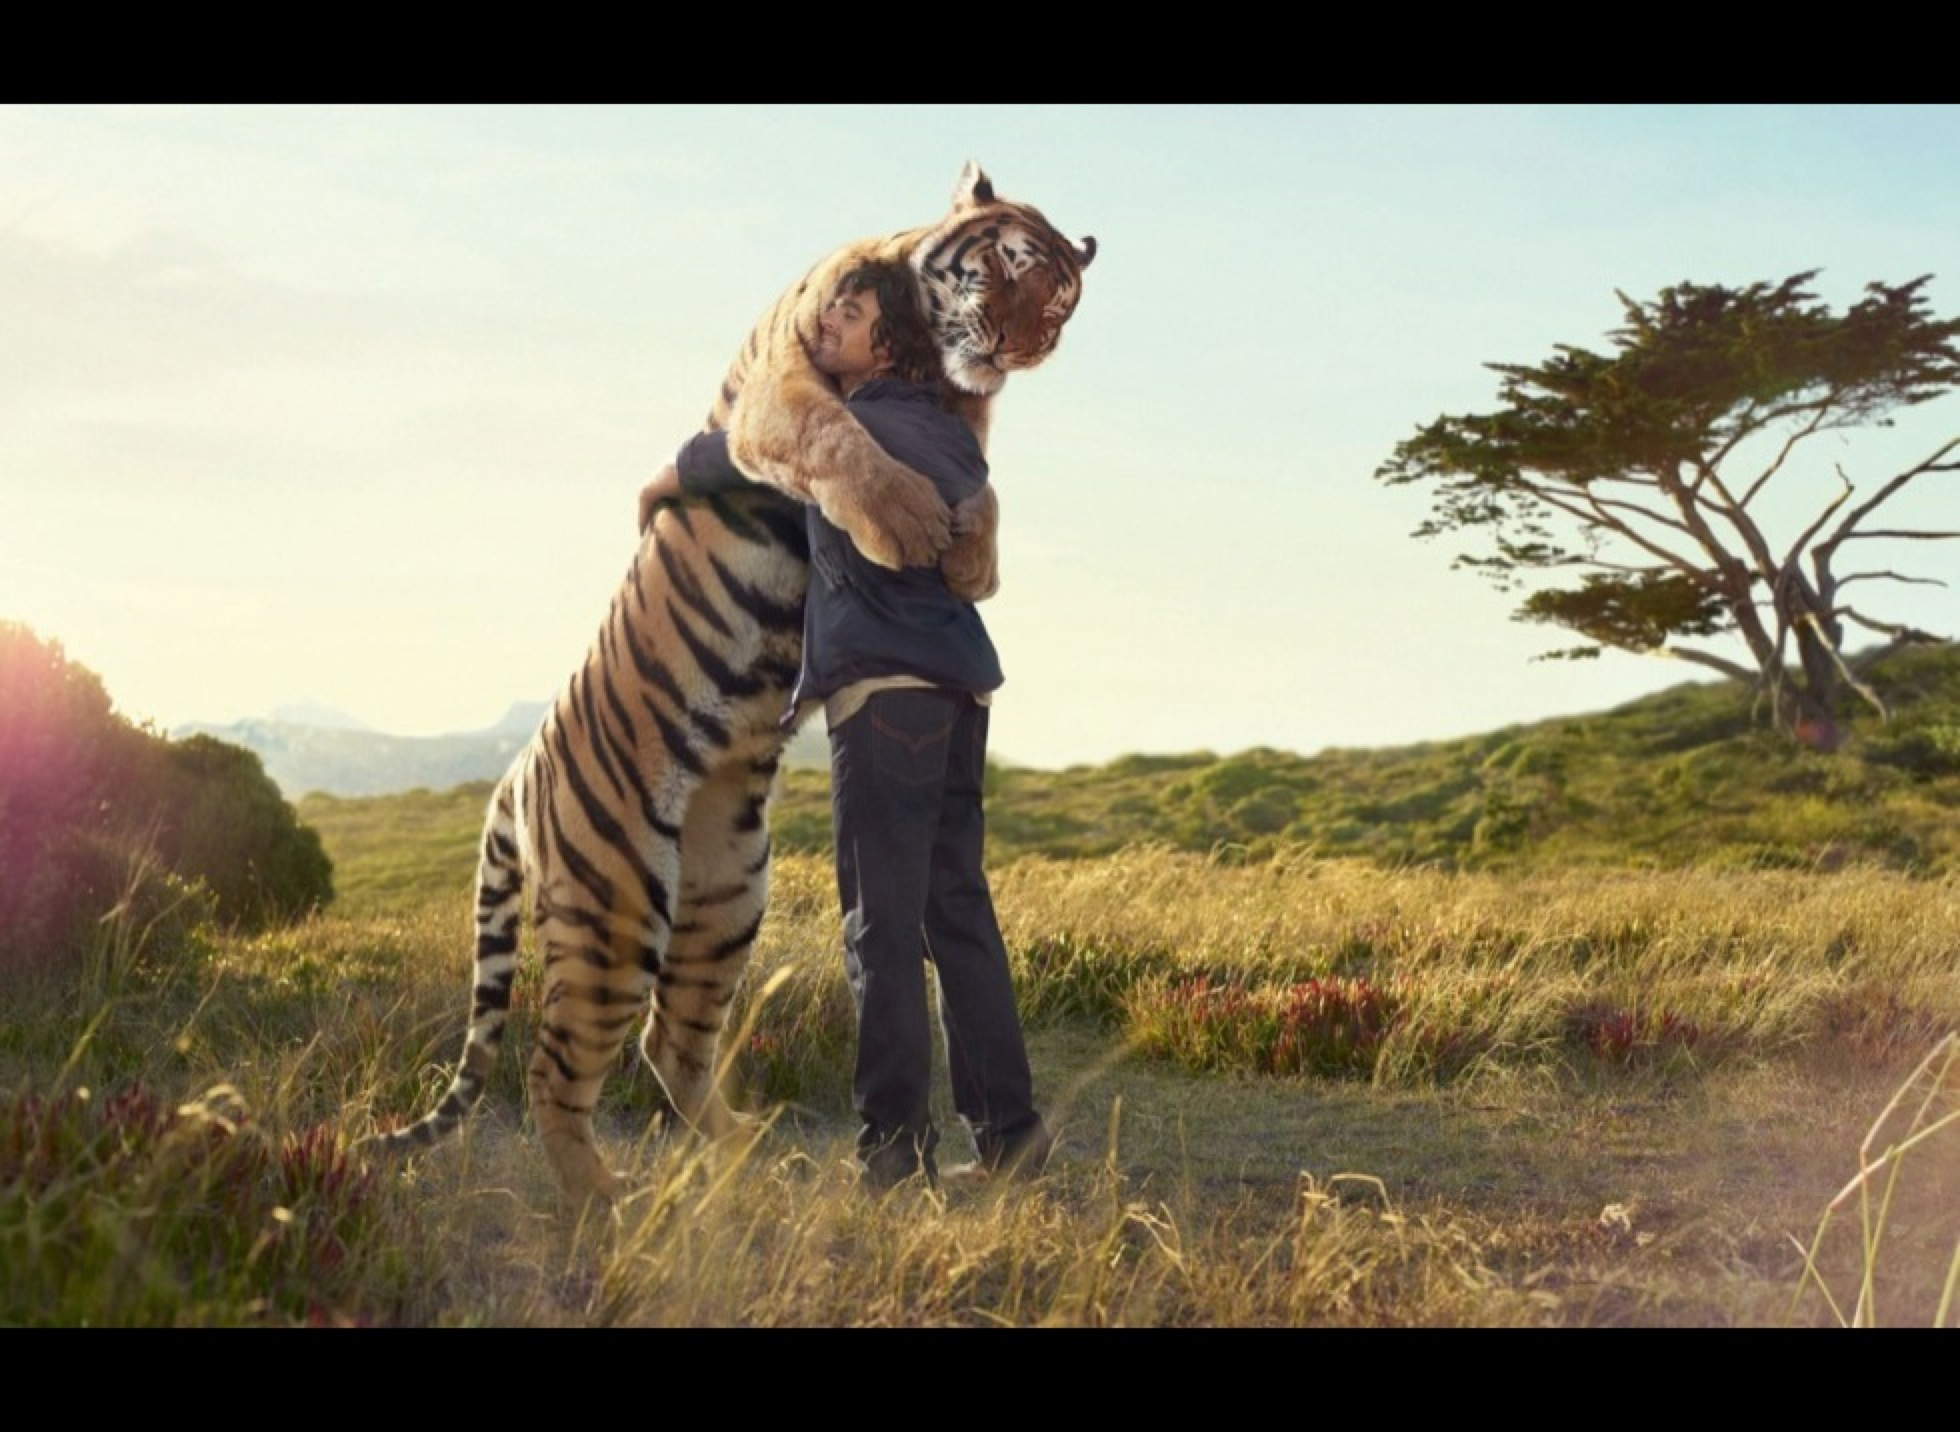 Love Animals Tigers Human Dude 1920x1080 Wallpaper Animals: Best Of Furry Hugs Photos To End This Friday